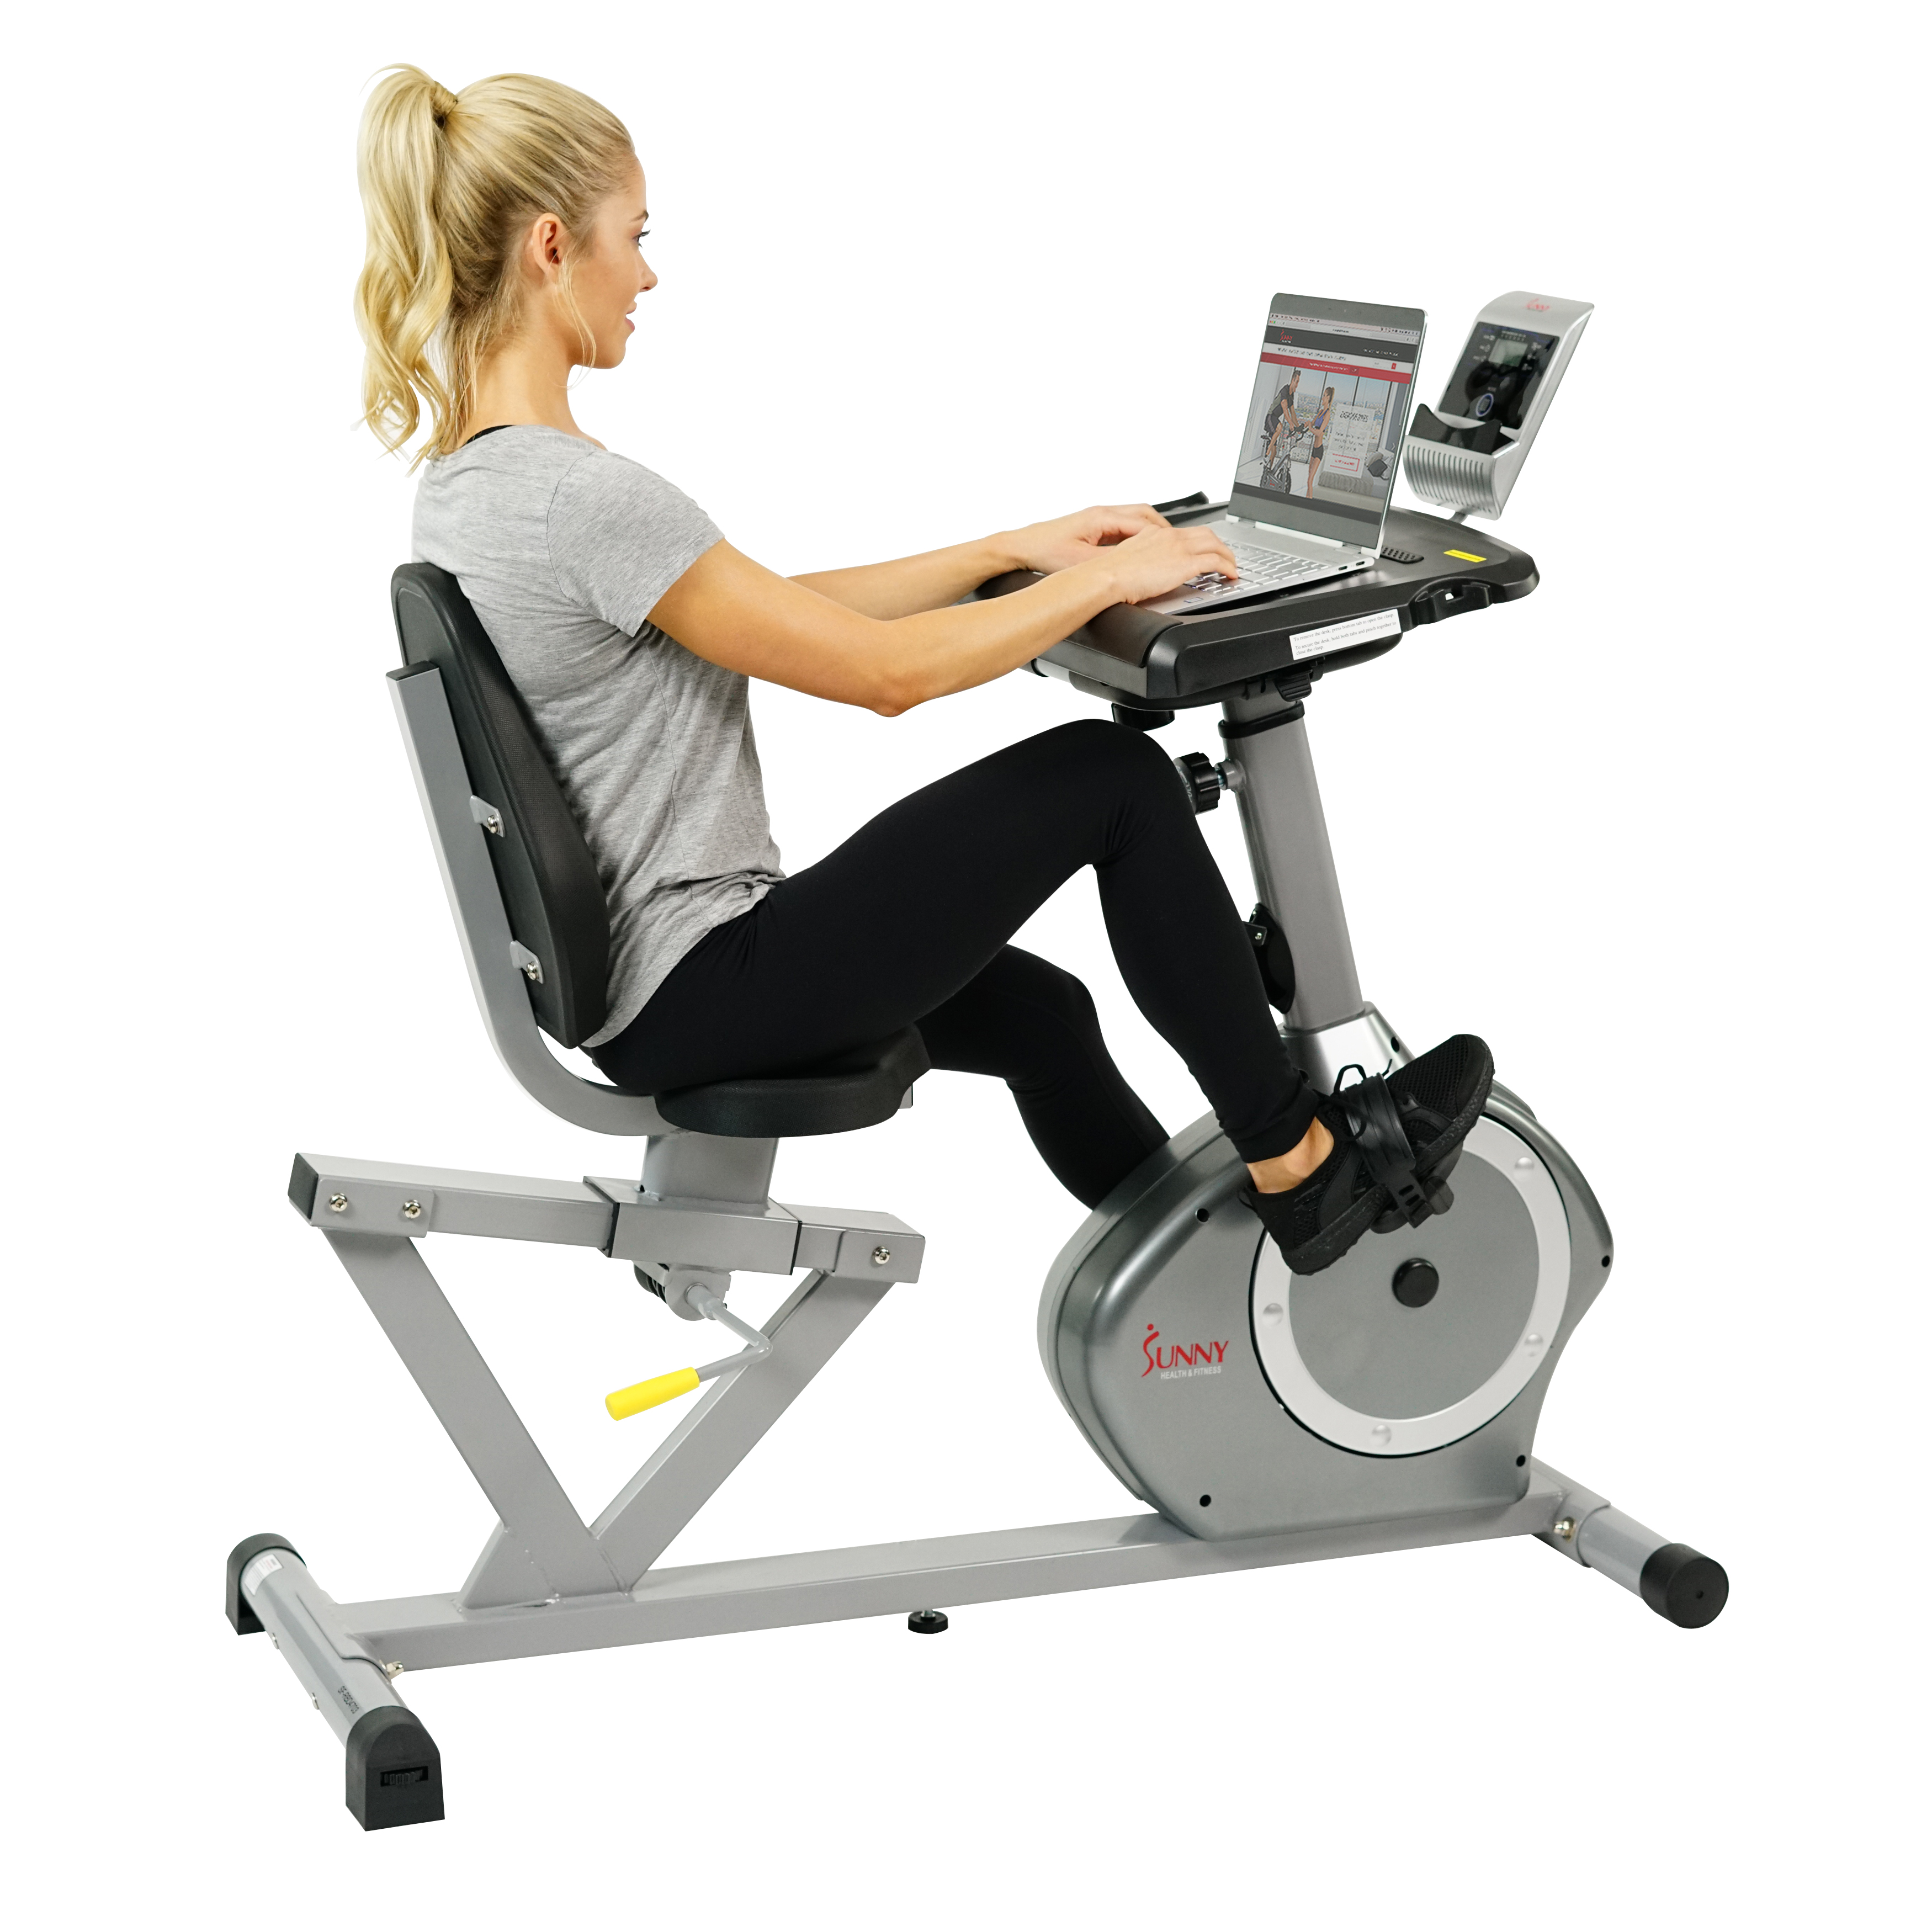 cardio recumbent sportsart chair bicycle front recumbentcycle product cycle desk